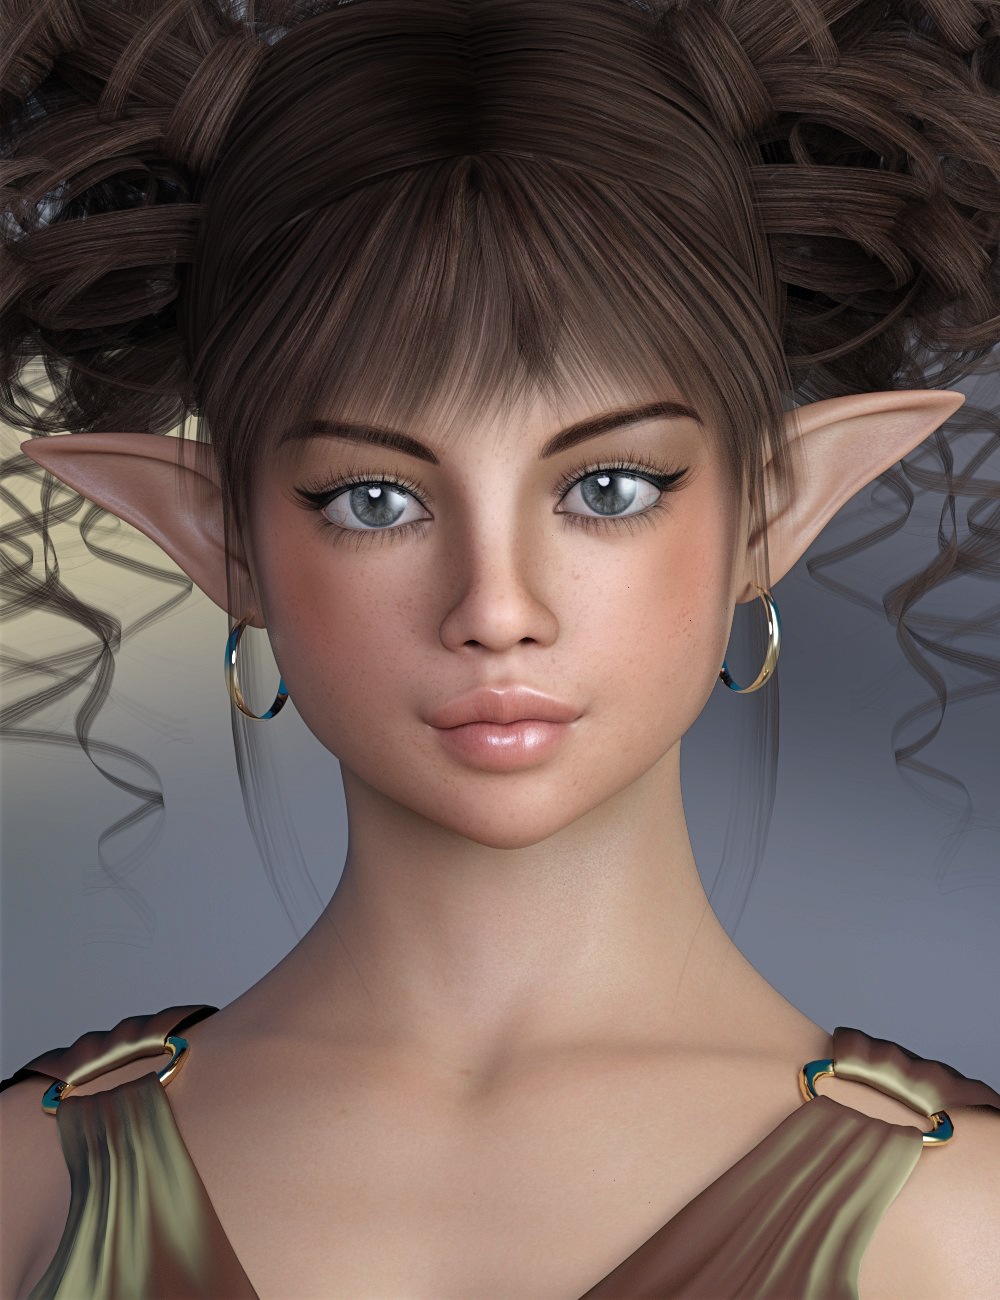 Juniper for Mika 8 by: 3DSublimeProductions, 3D Models by Daz 3D